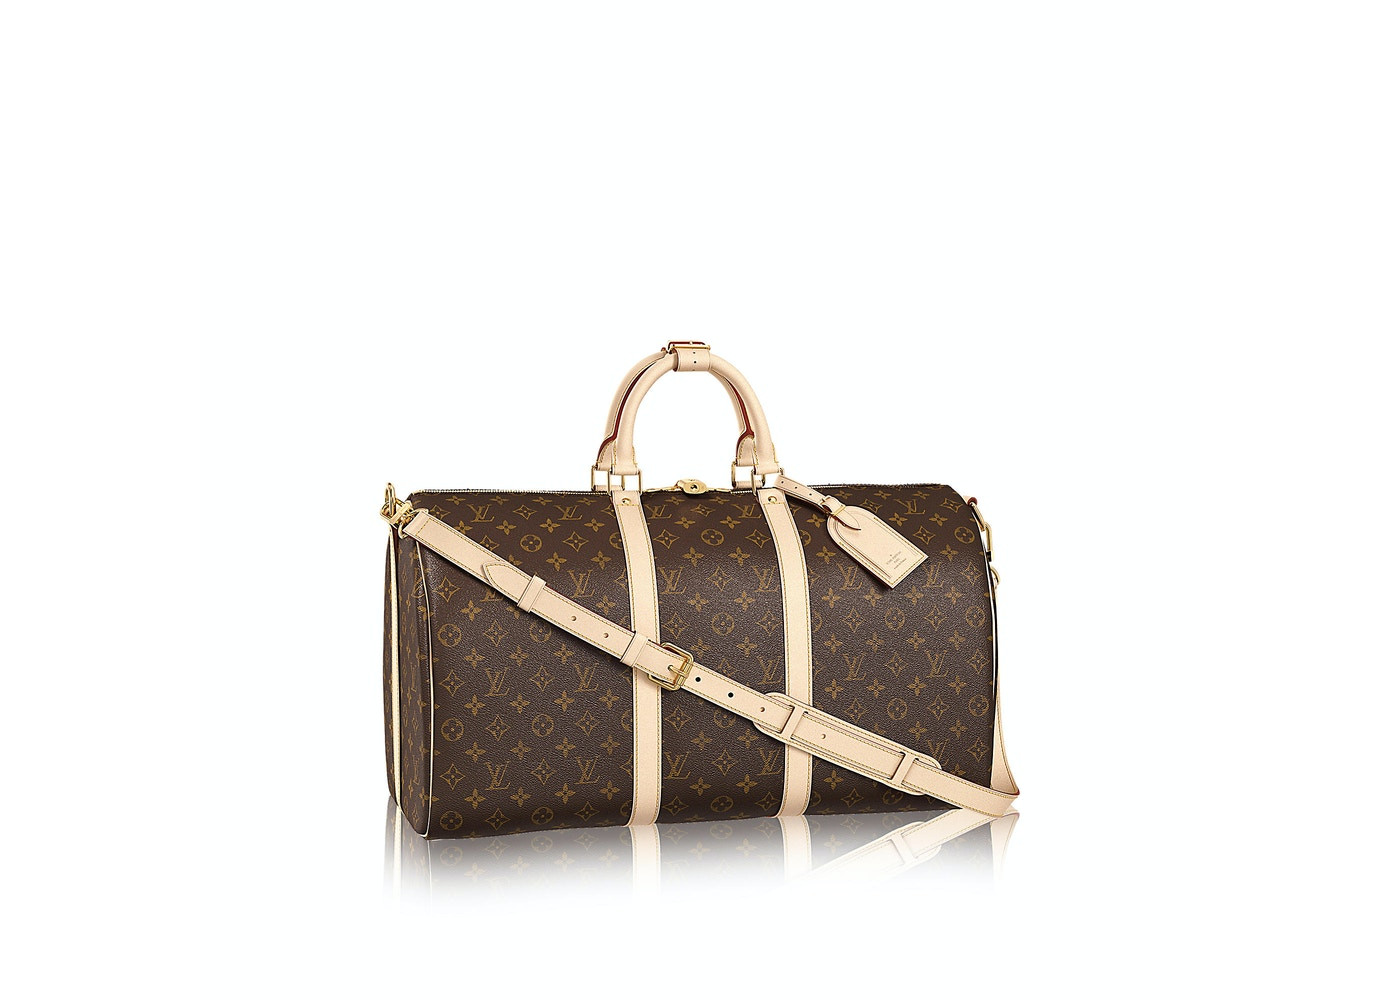 5bf98dac288 Louis Vuitton Keepall Bandouliere Monogram (With Accessories) 50 Brown